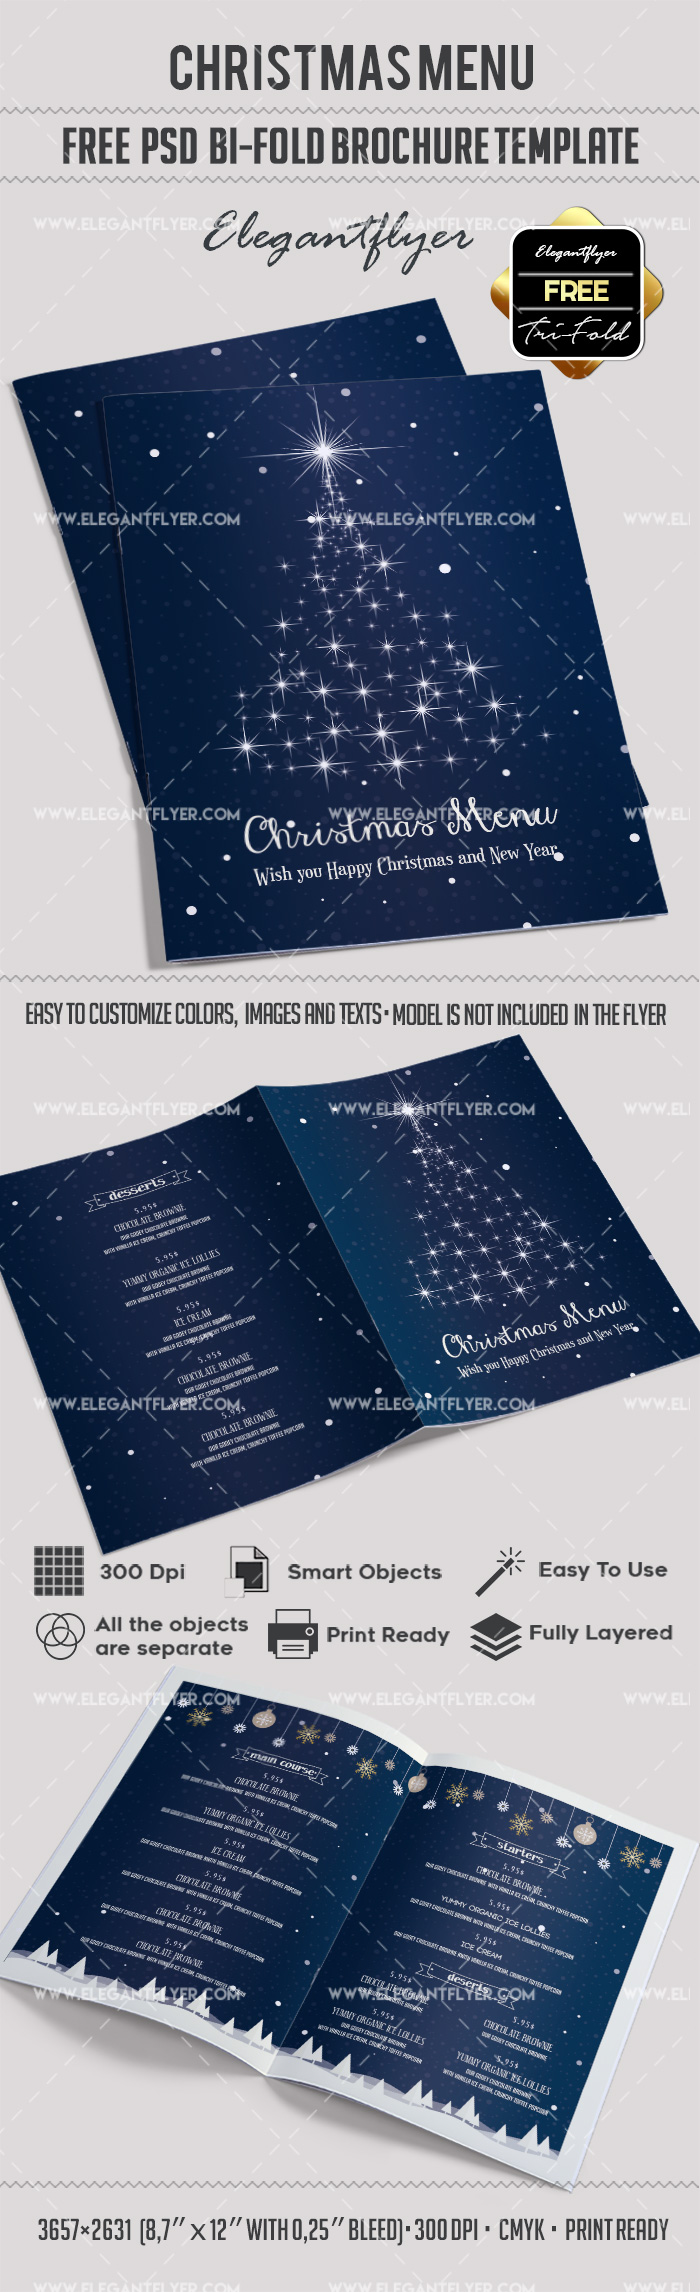 Free christmas menu bi fold psd brochure template by for Free flyer brochure templates